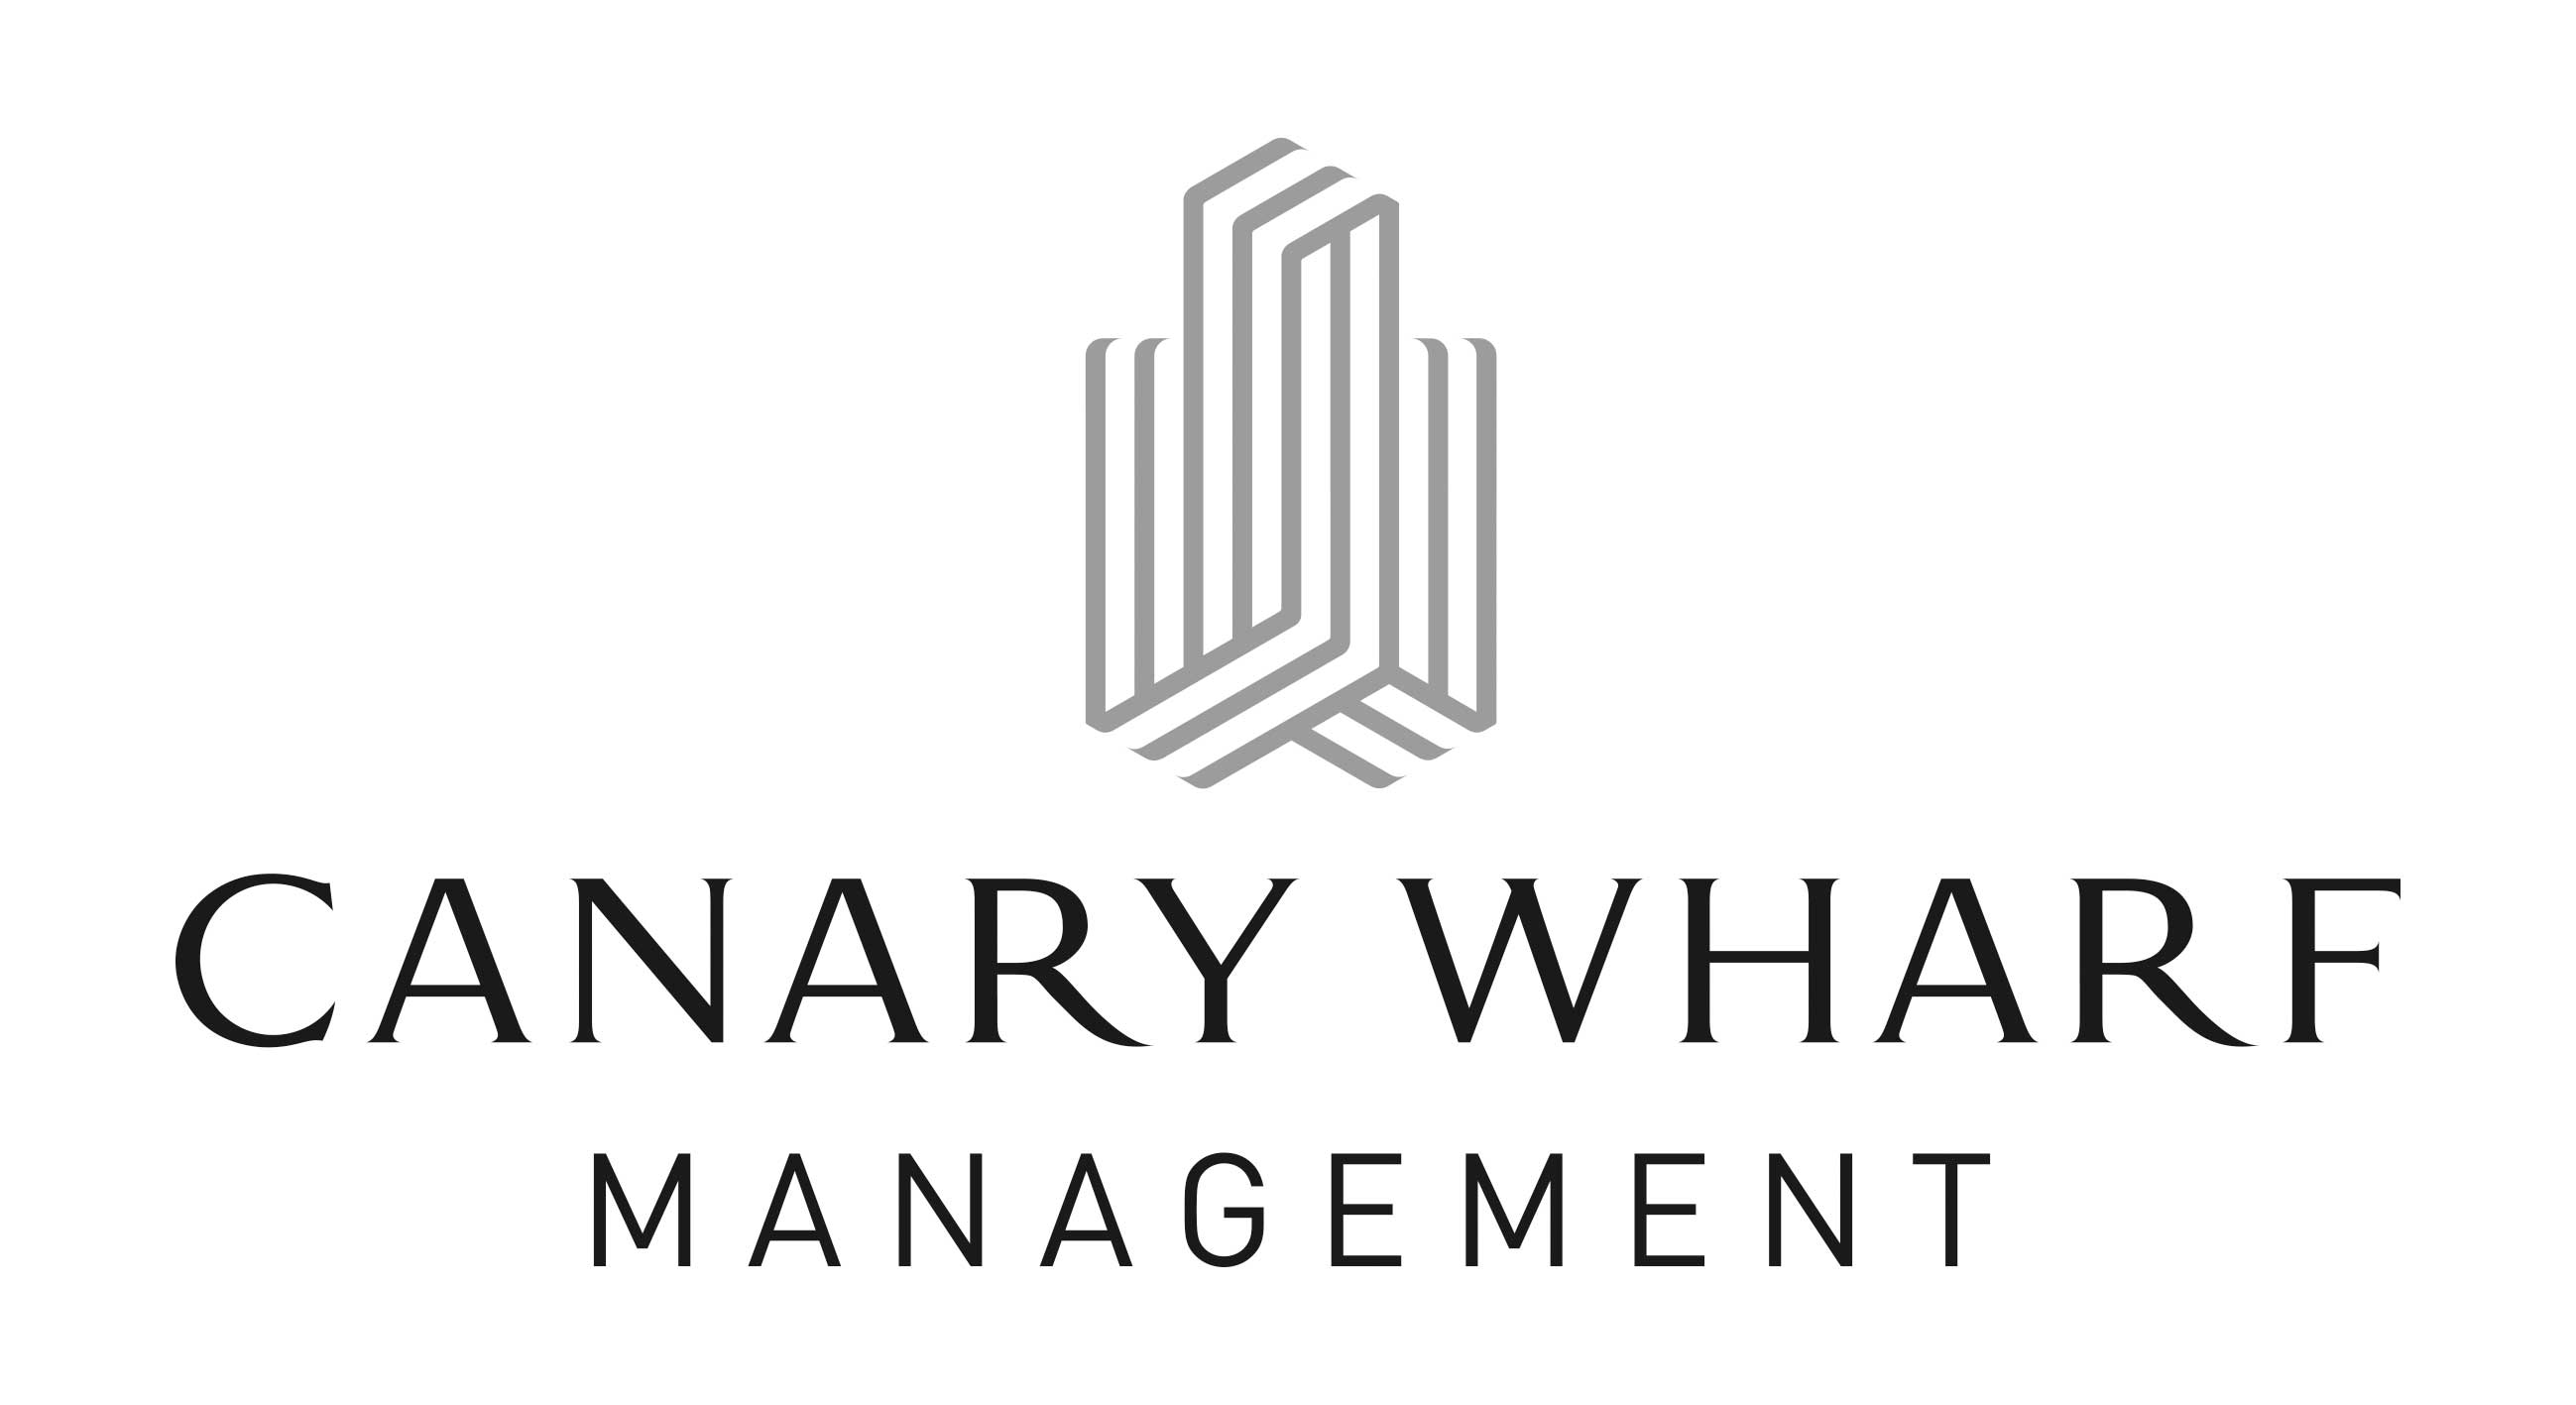 Canary Wharf management group logo